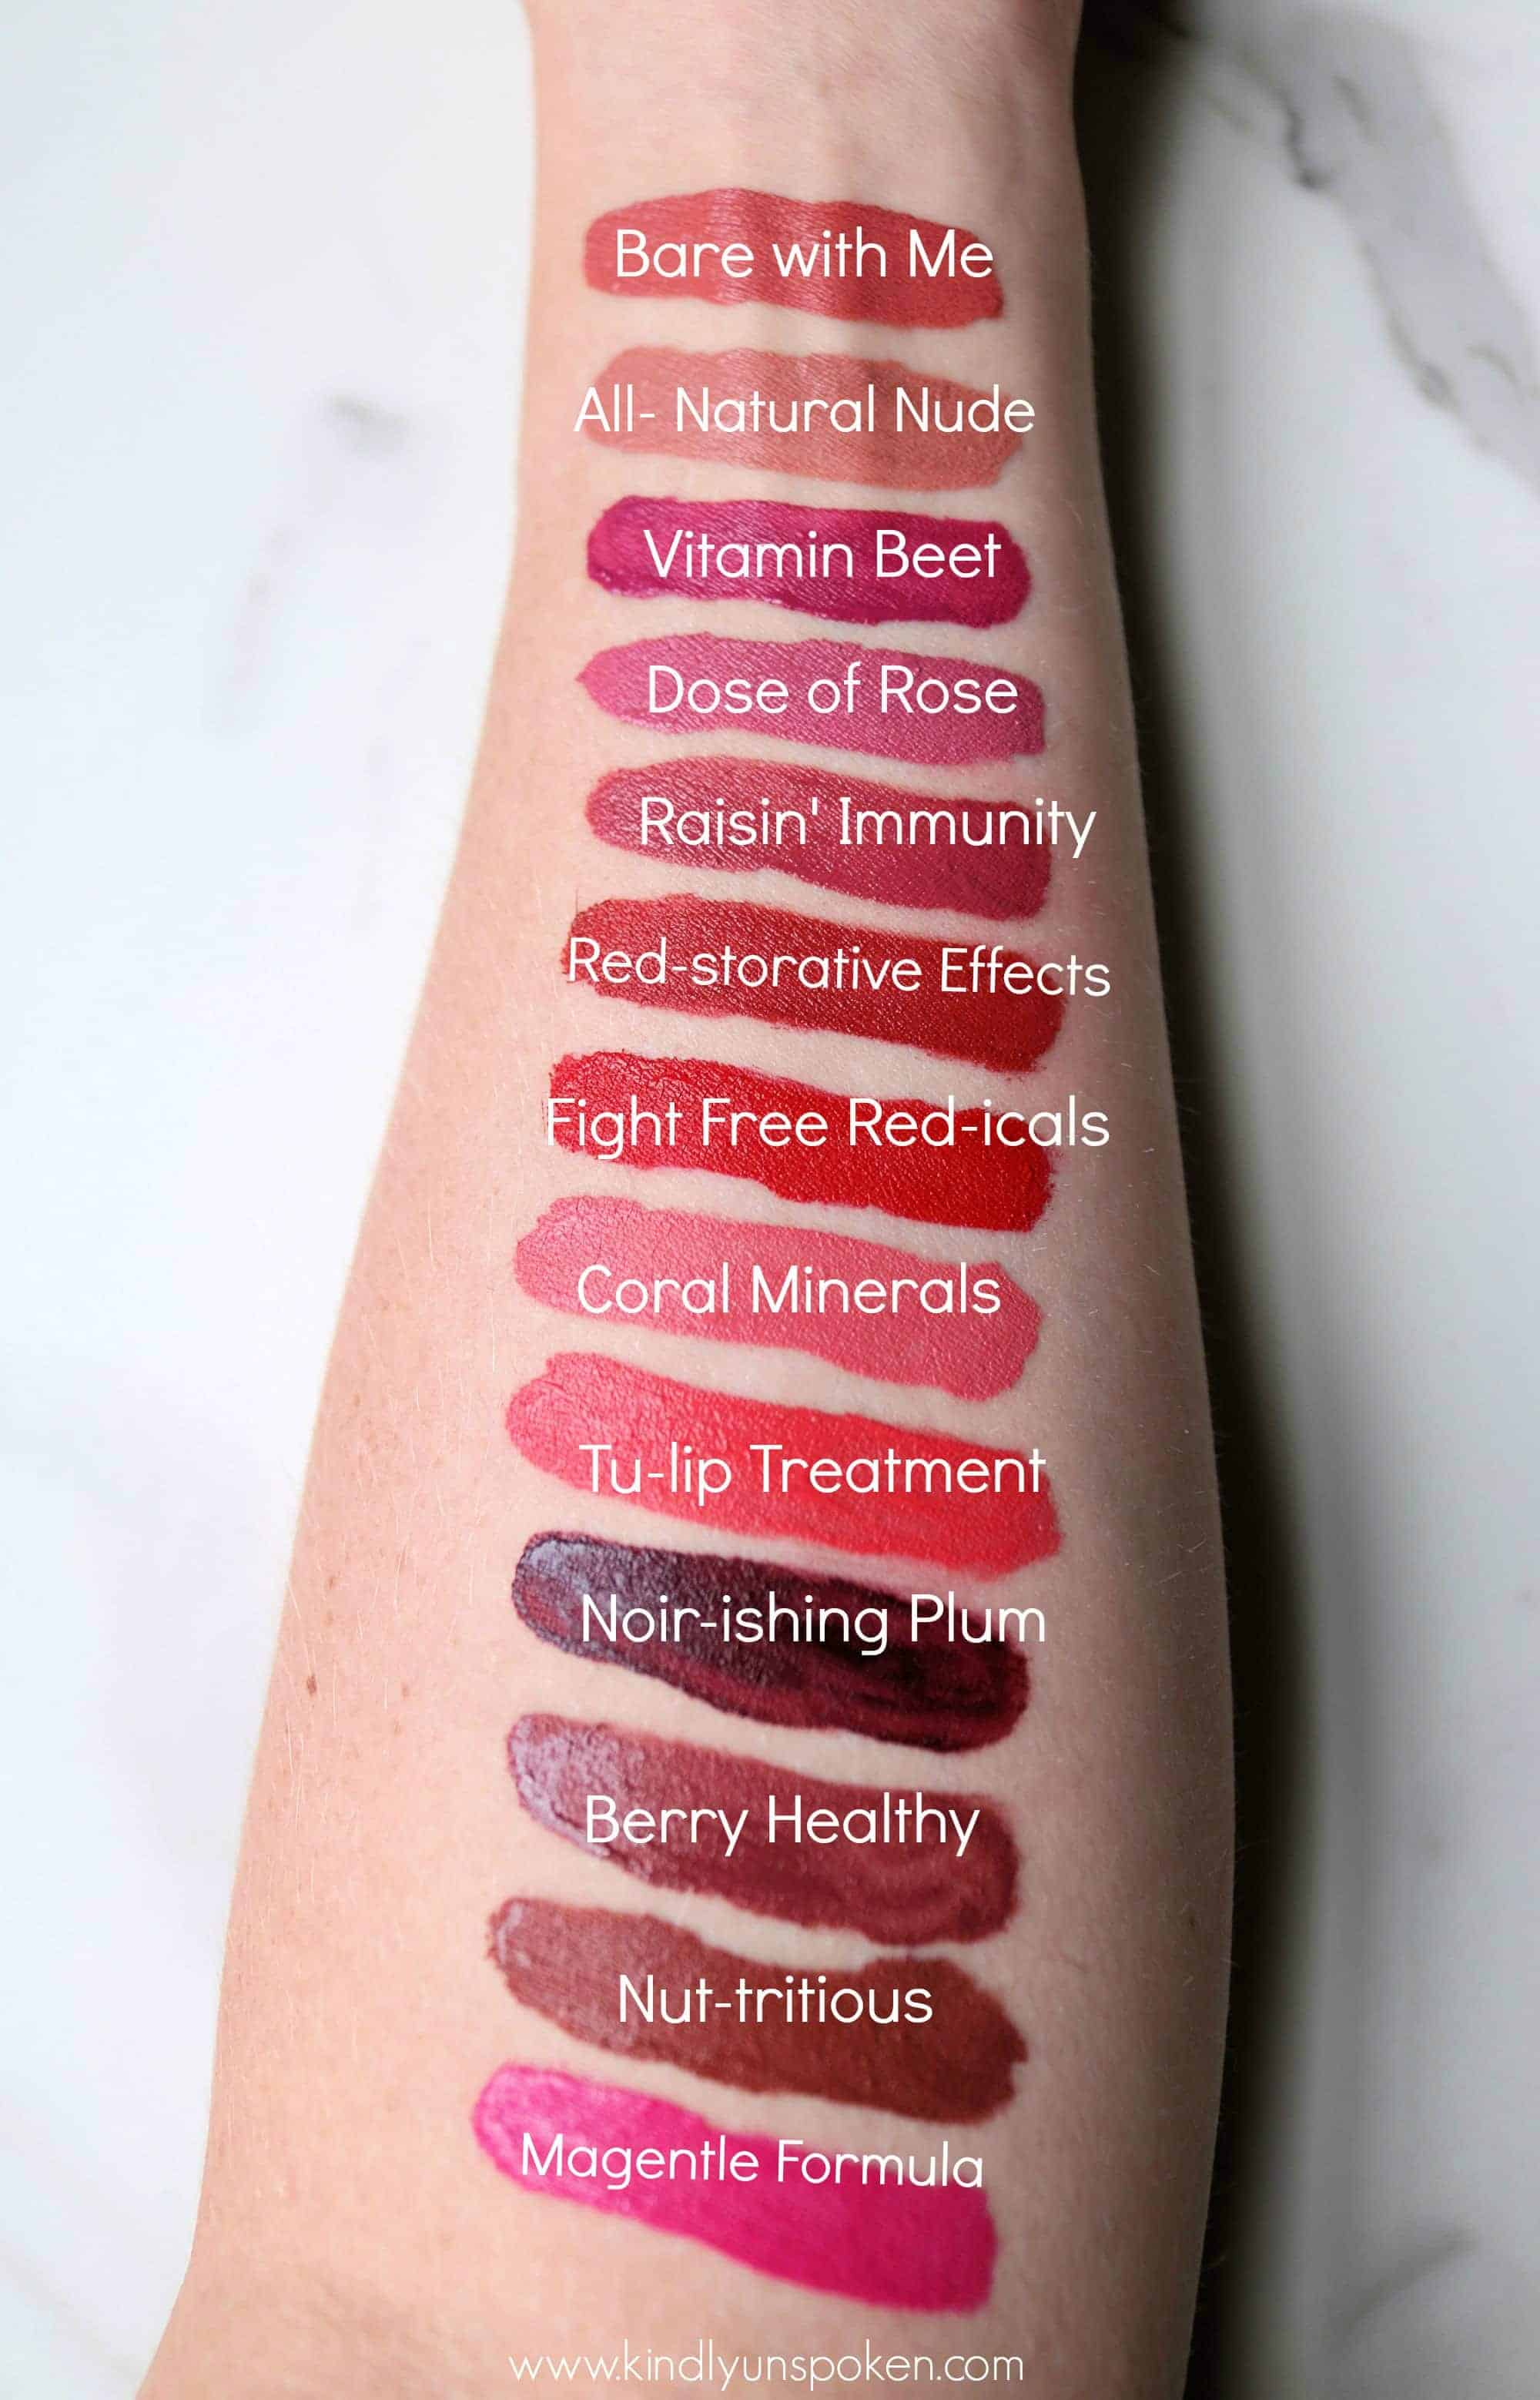 On the hunt for a gorgeous, long-lasting drugstore liquid lipstick? Then you'll love the Physicians Formula Healthy Lip Velvet Liquid Lipsticks that come in 13 beautiful shades and last all day long! Check out my the post for a full review of the Physicians Formula lipsticks with swatches.